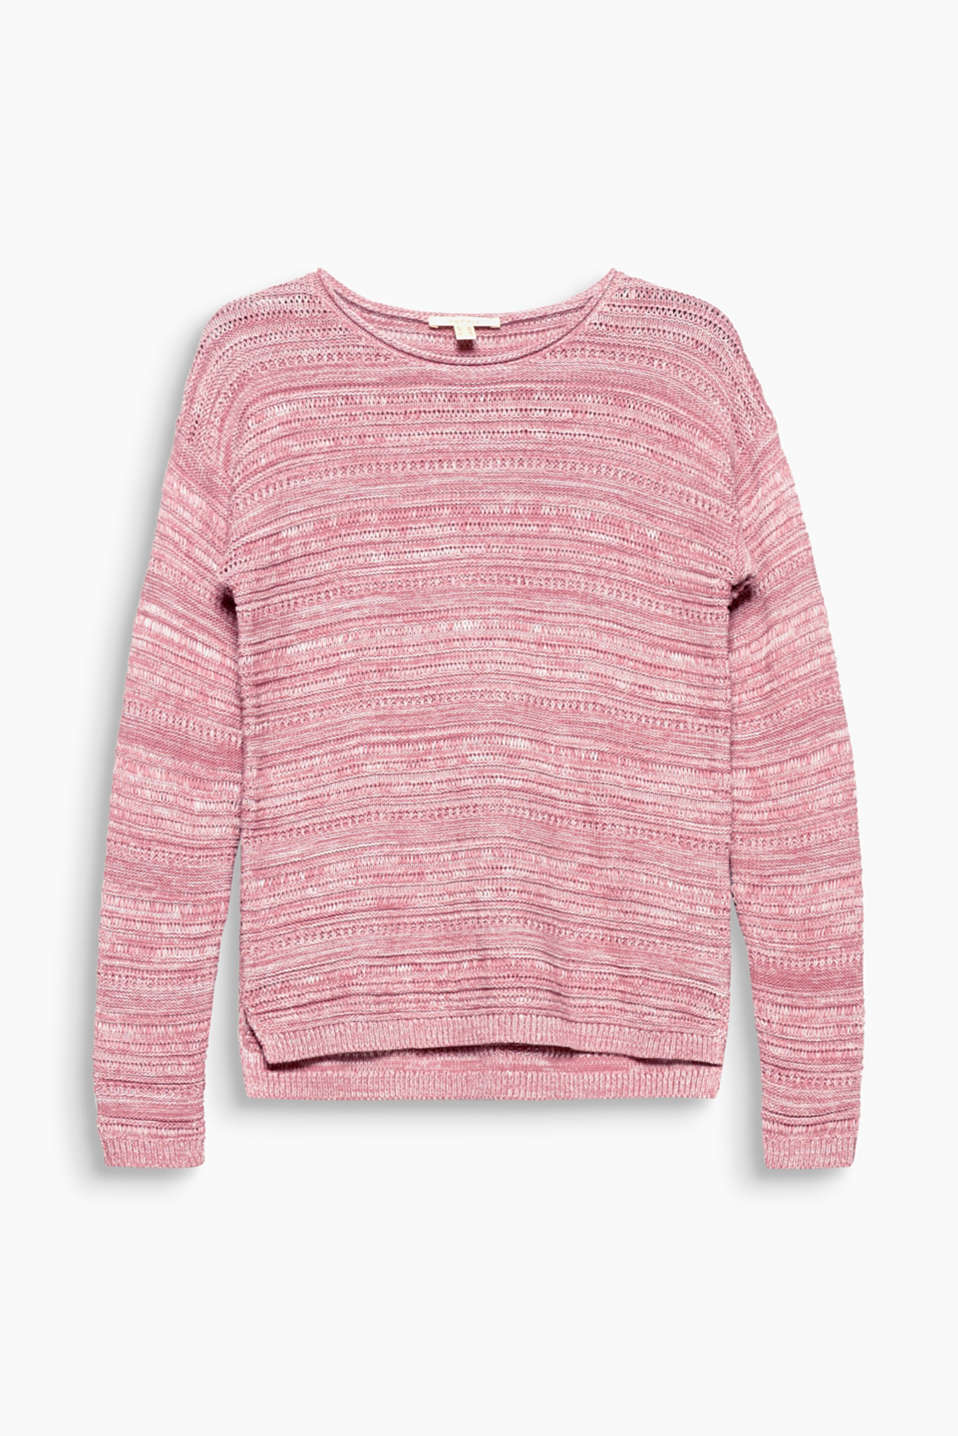 Various textures in melange cotton yarn makes this jumper a striking, eye-catching piece!